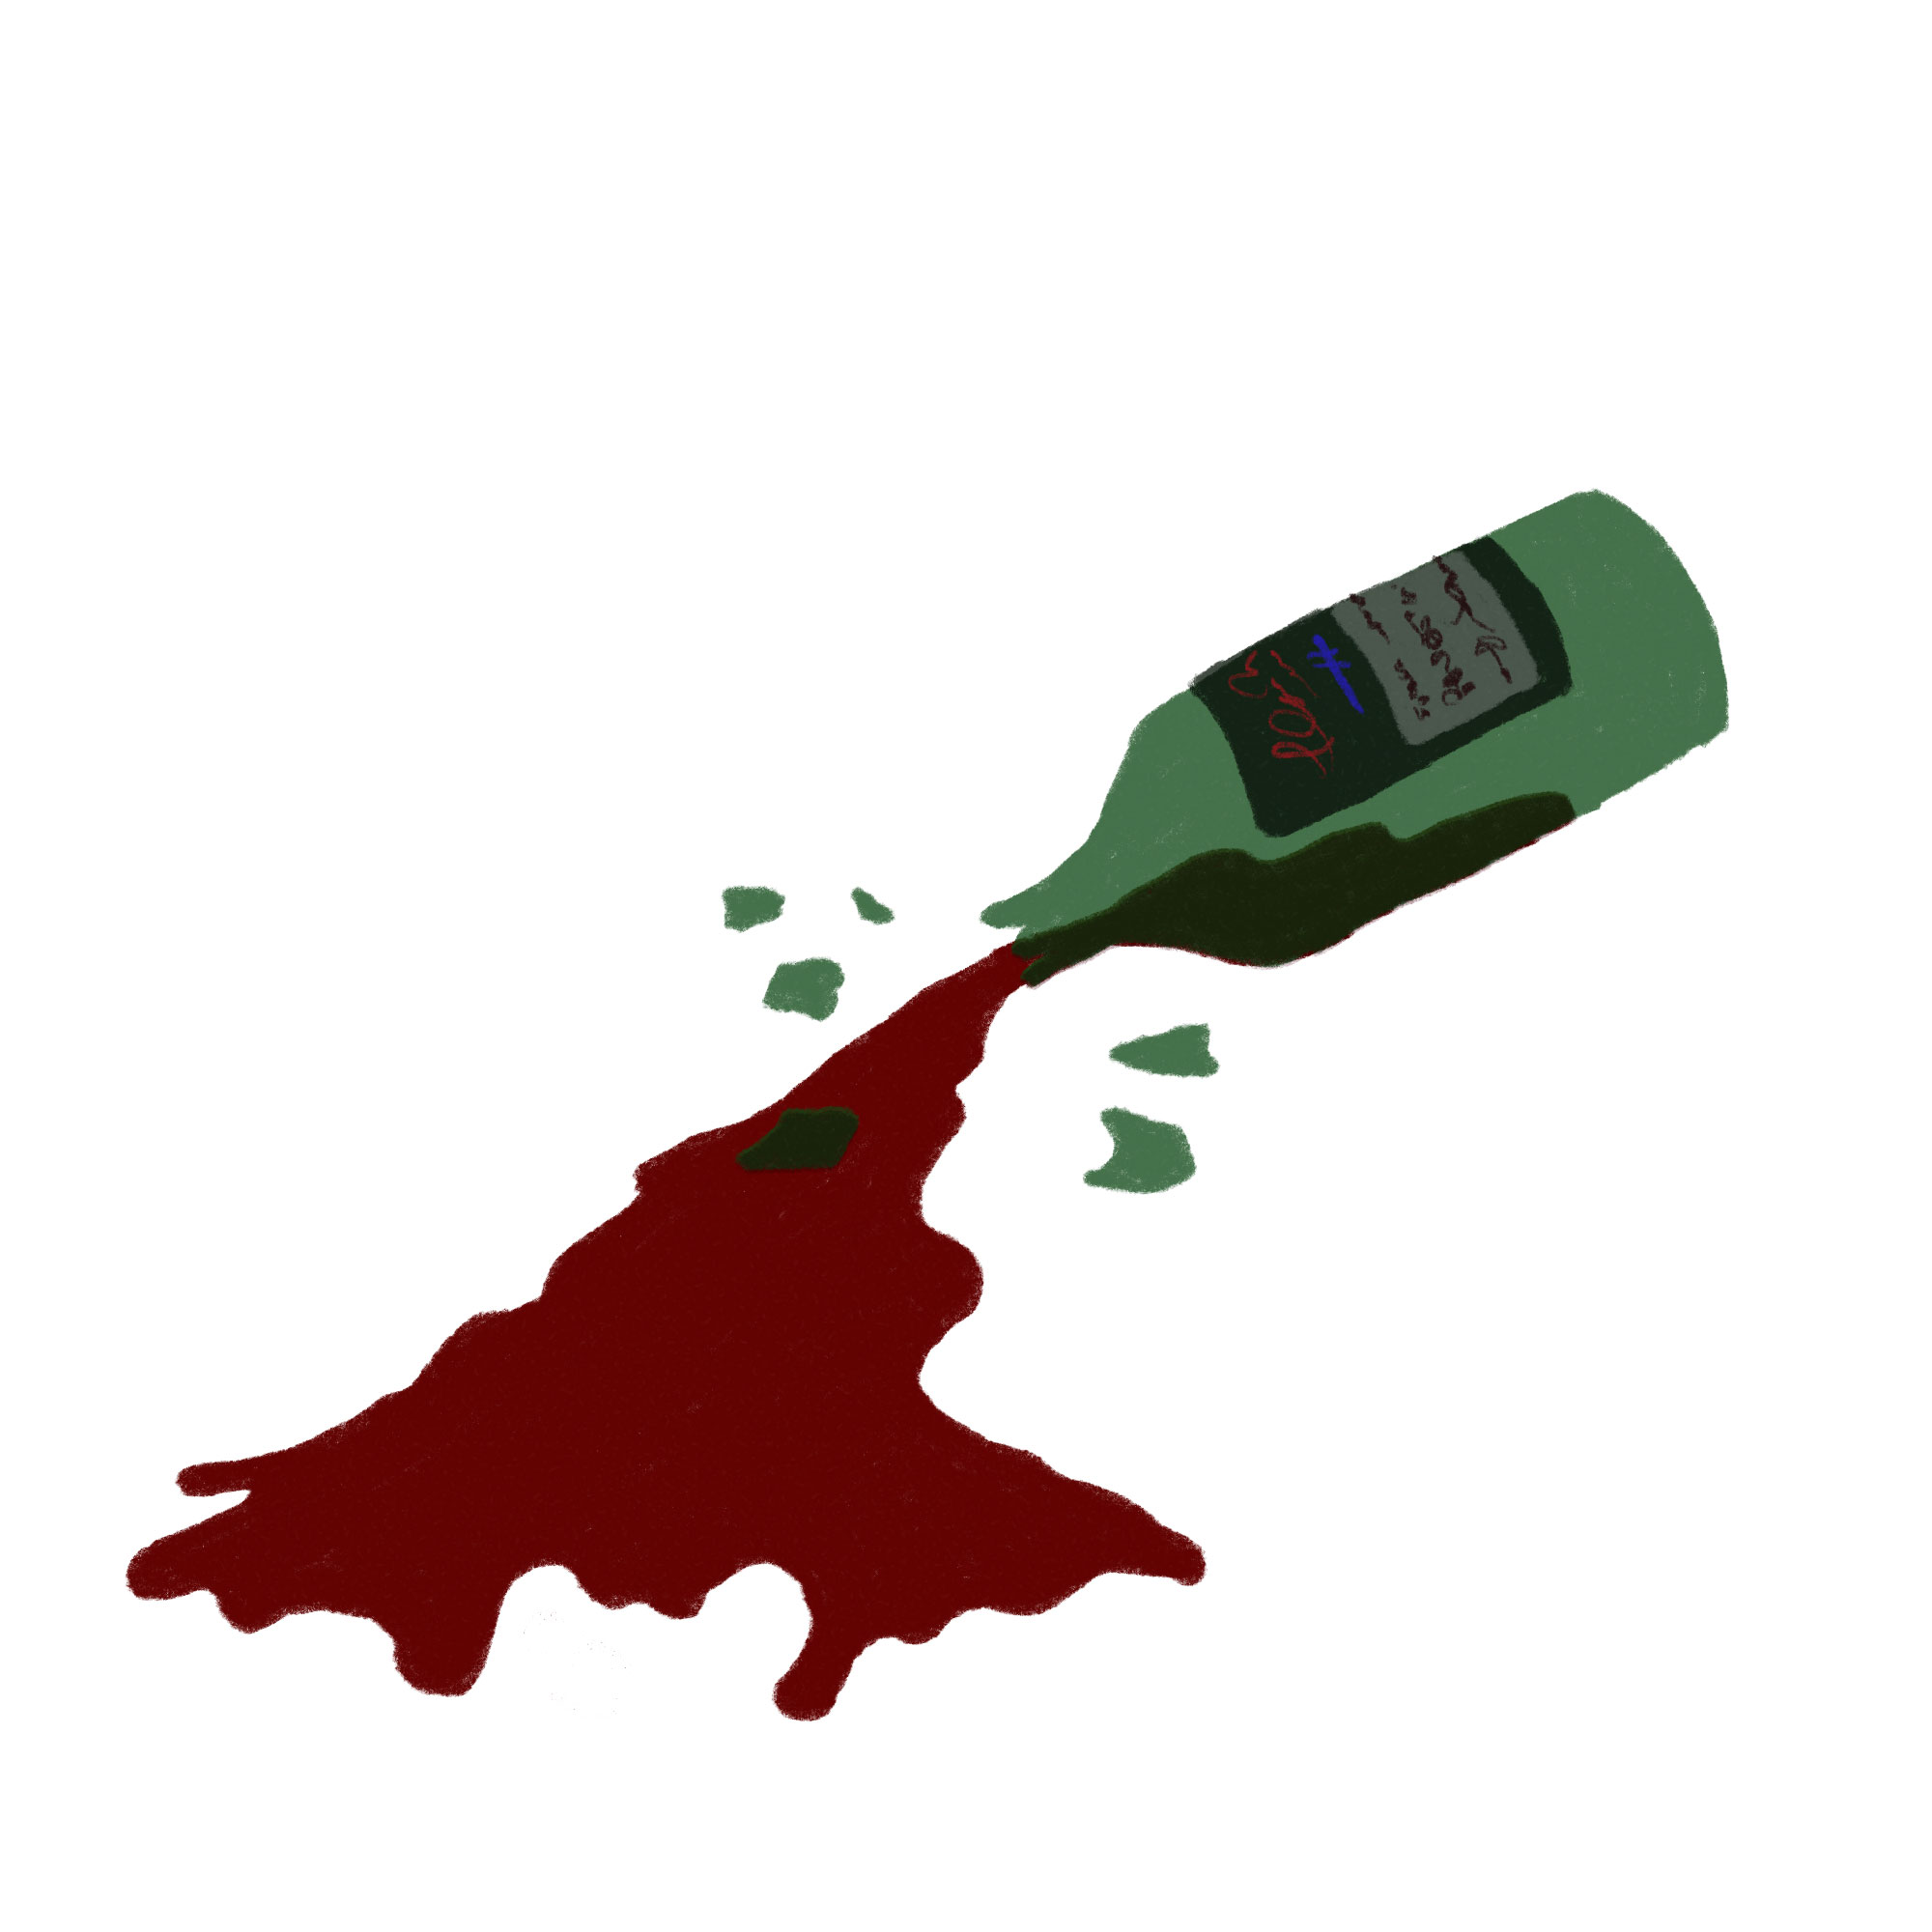 Illustration of a cracked, spilled bottle of wine laying on the ground